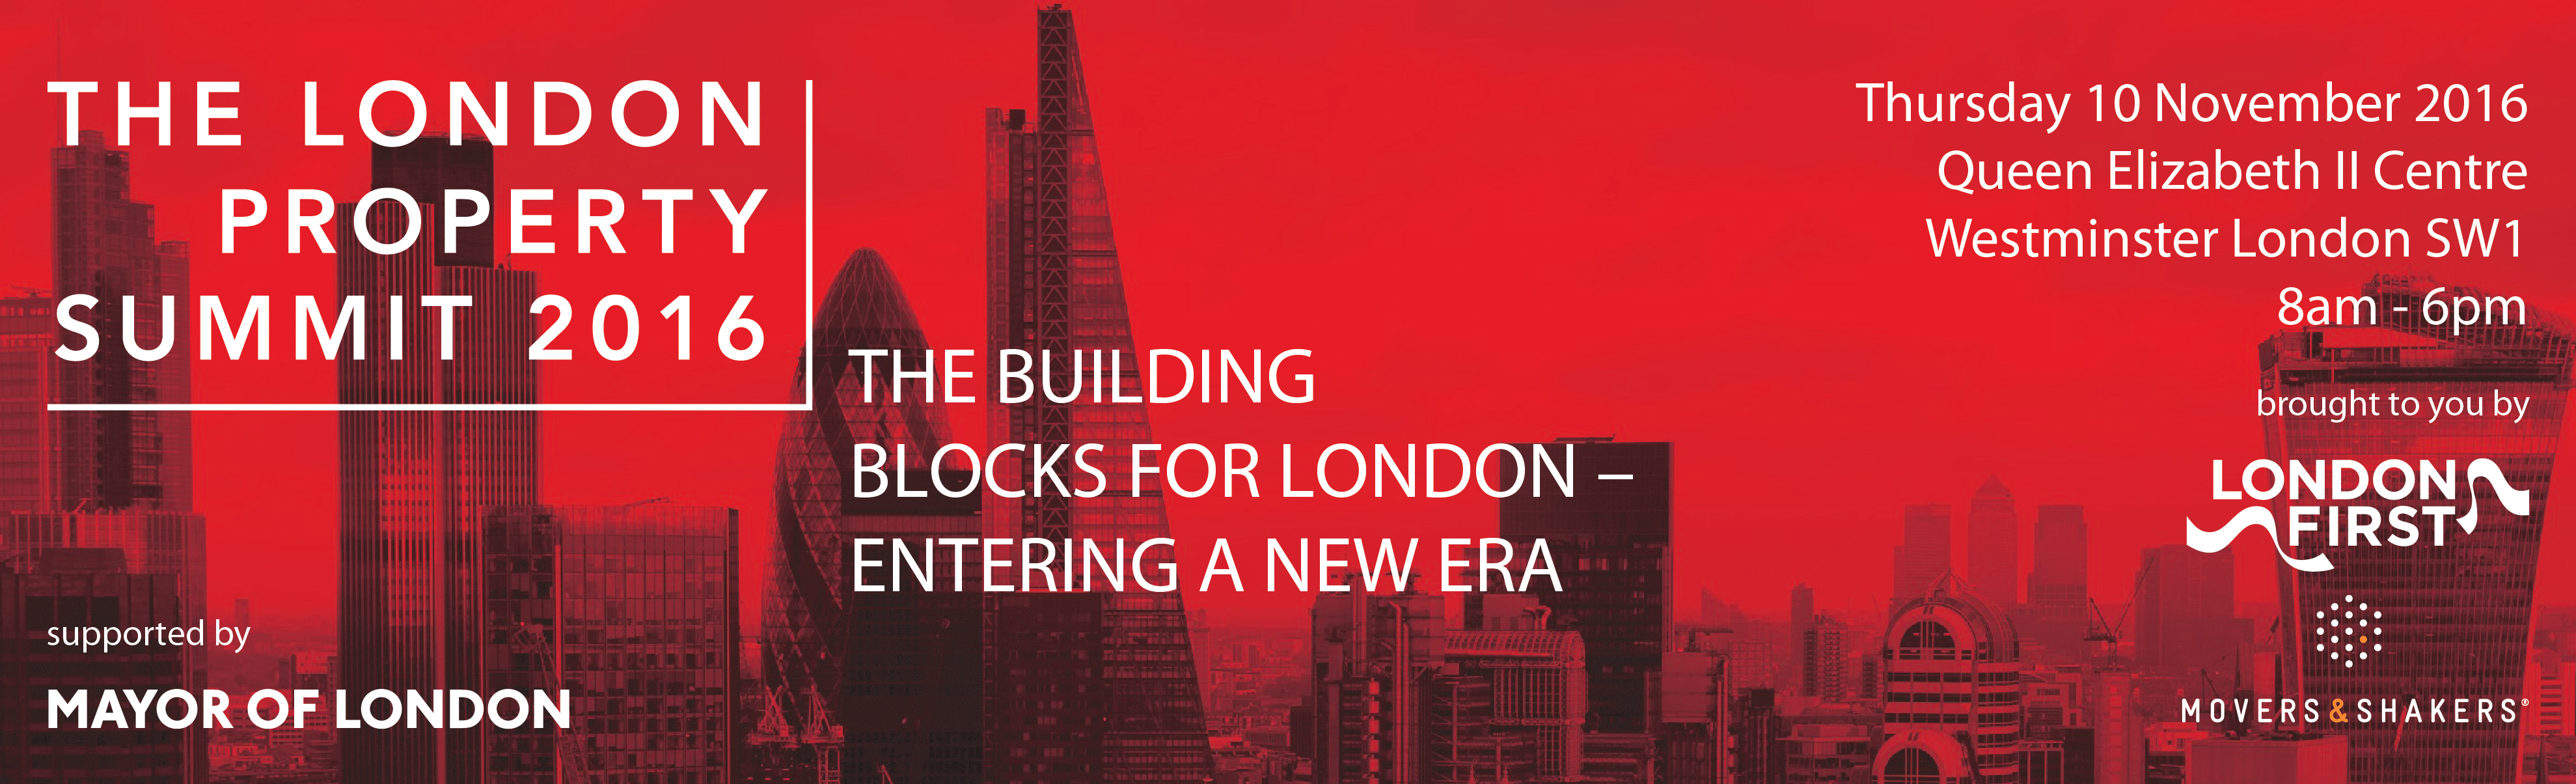 London Property Summit